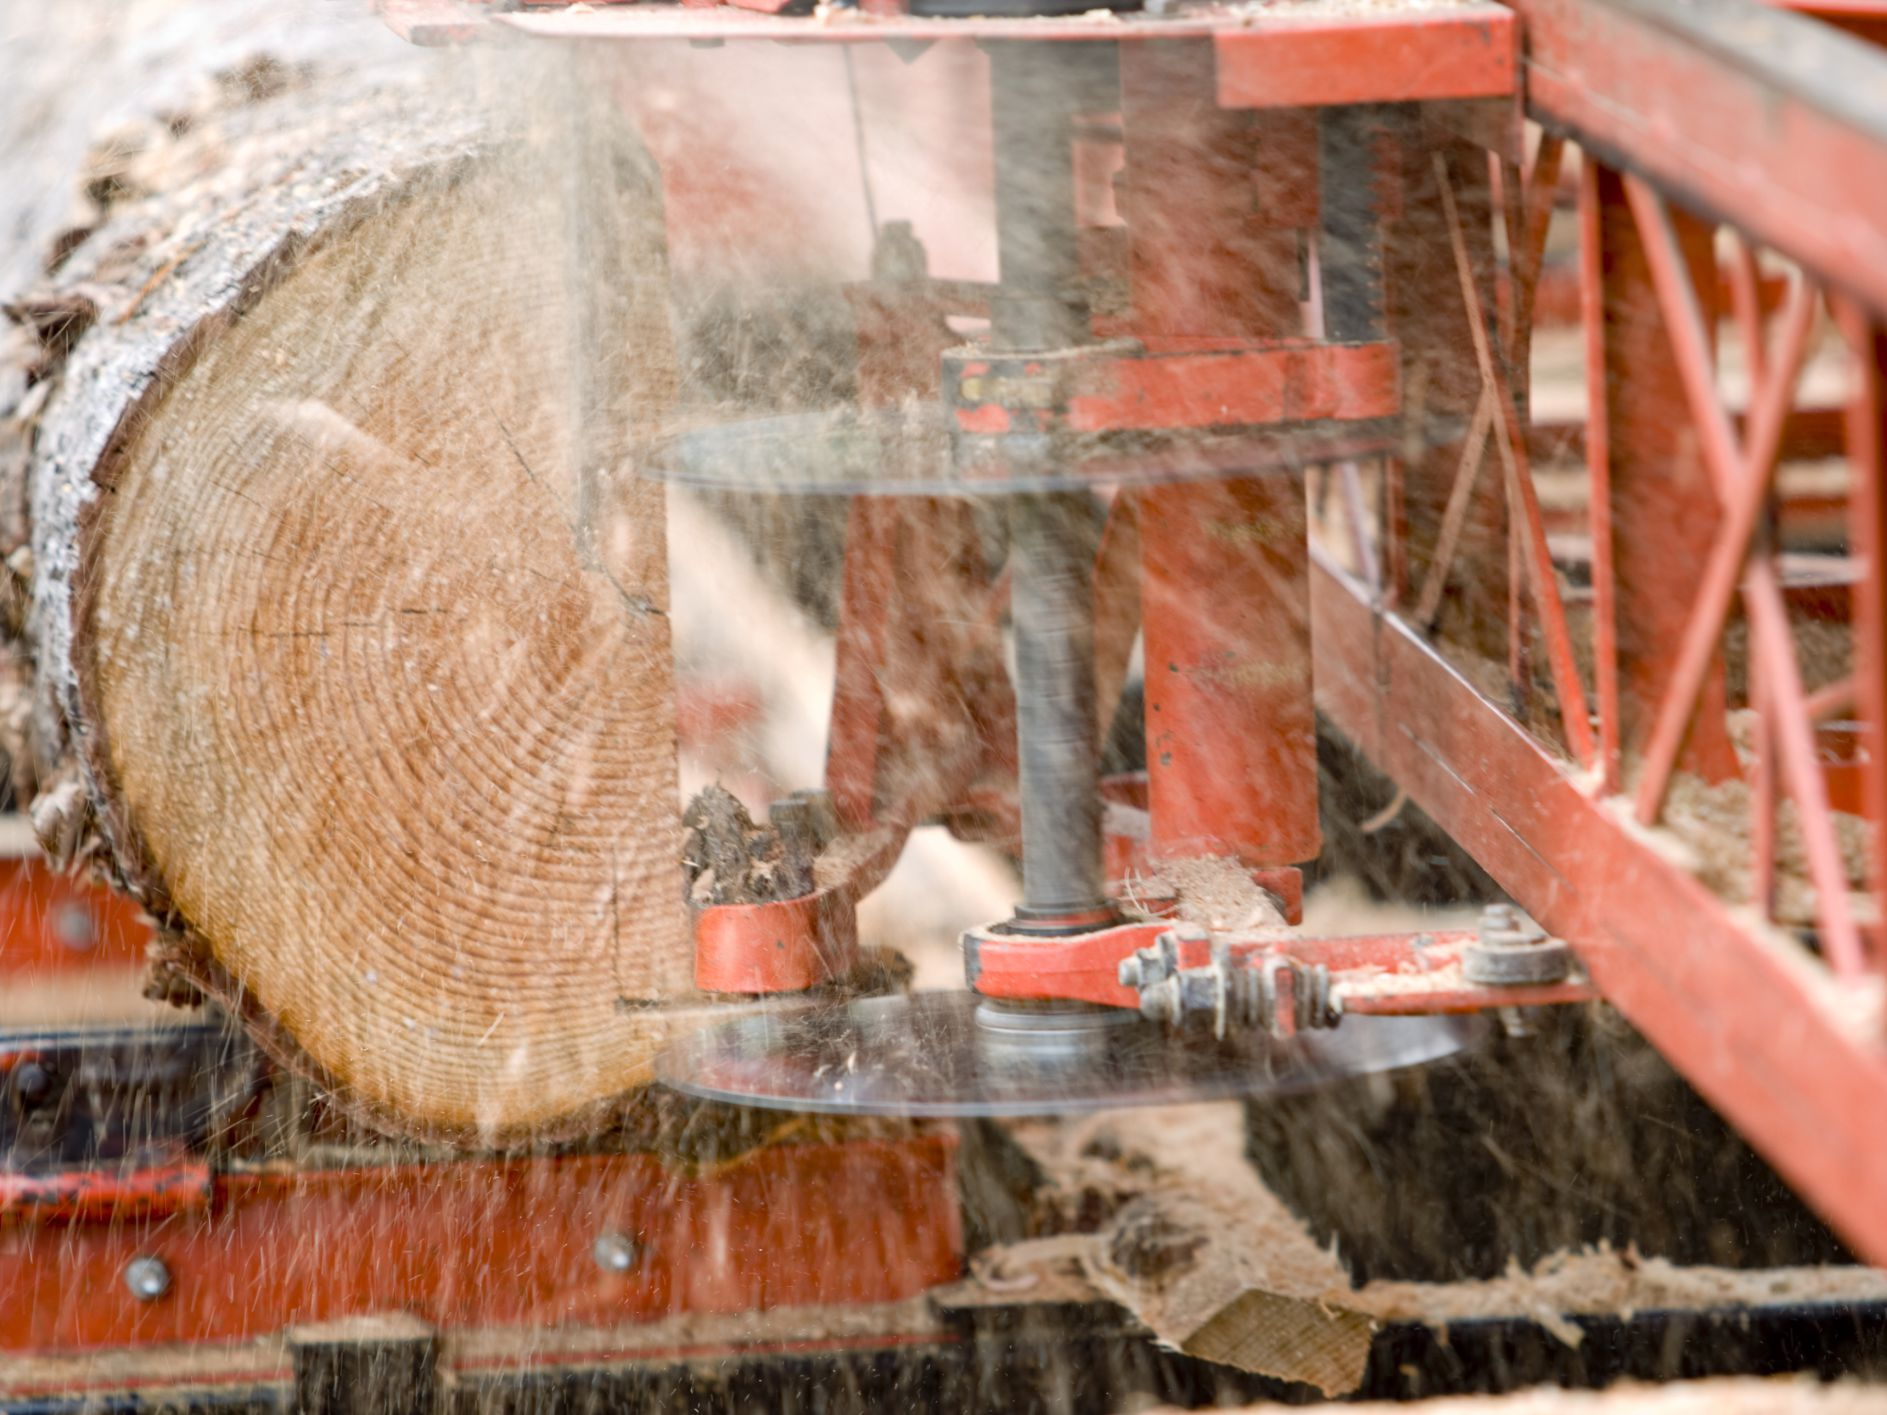 Woodmizer Sawmill For Sale >> What To Know Before You Buy A Woodmizer Sawmill